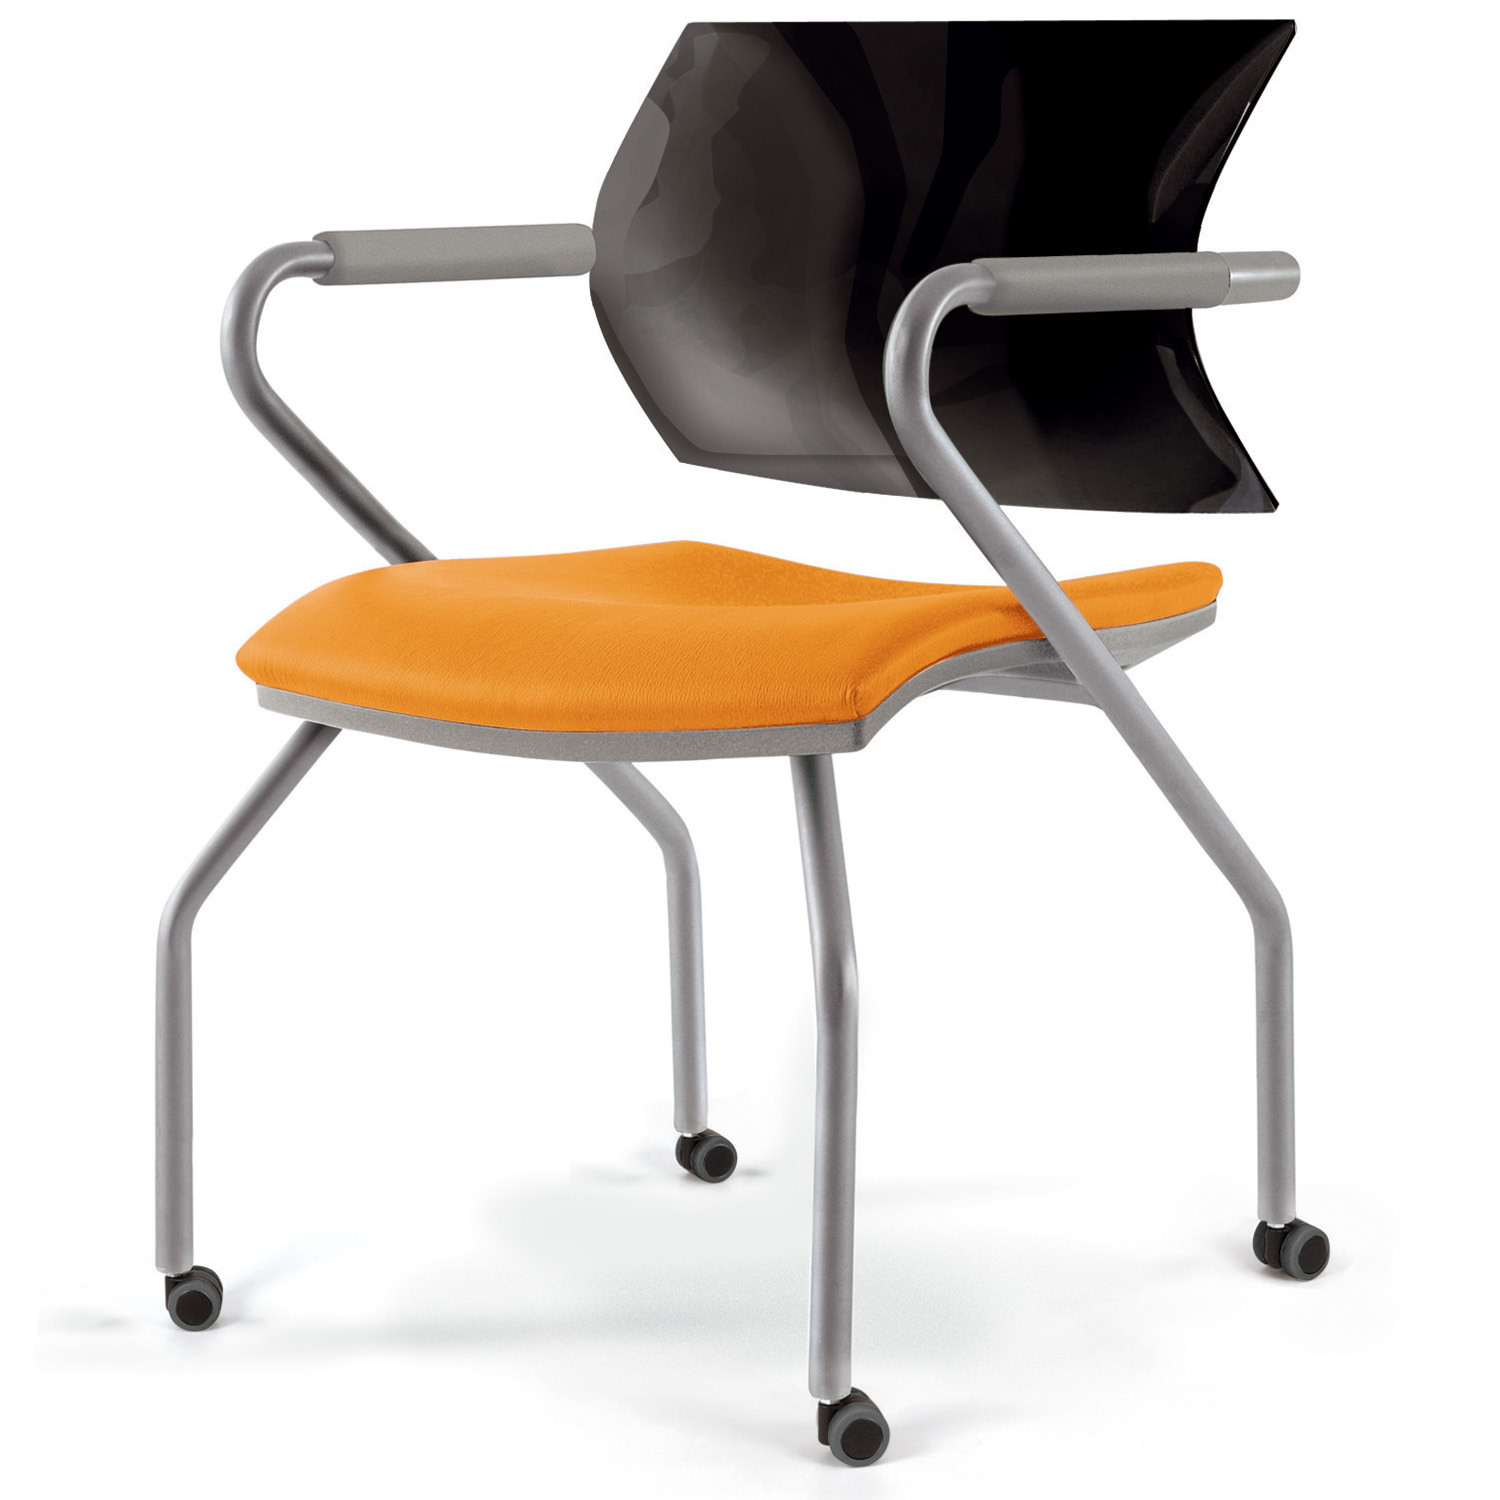 Aire Jr 4-Legged Chair with castors